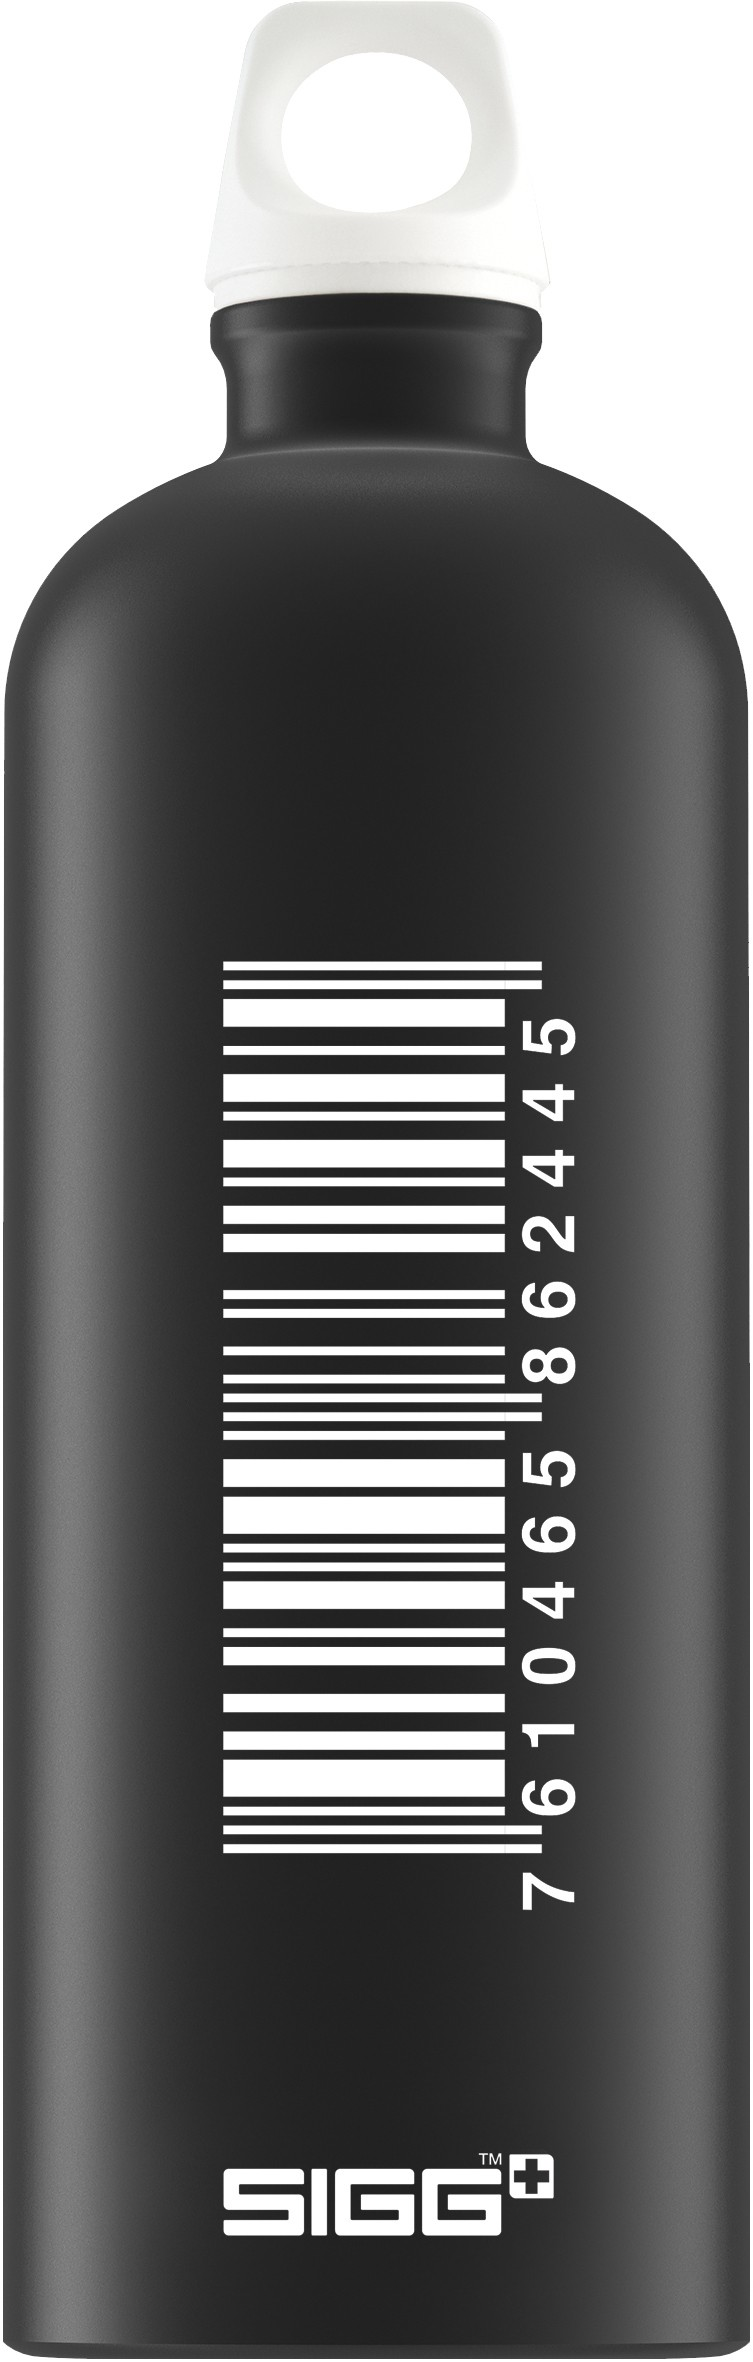 Láhev SIGG My Bottle 1 l - SIGG